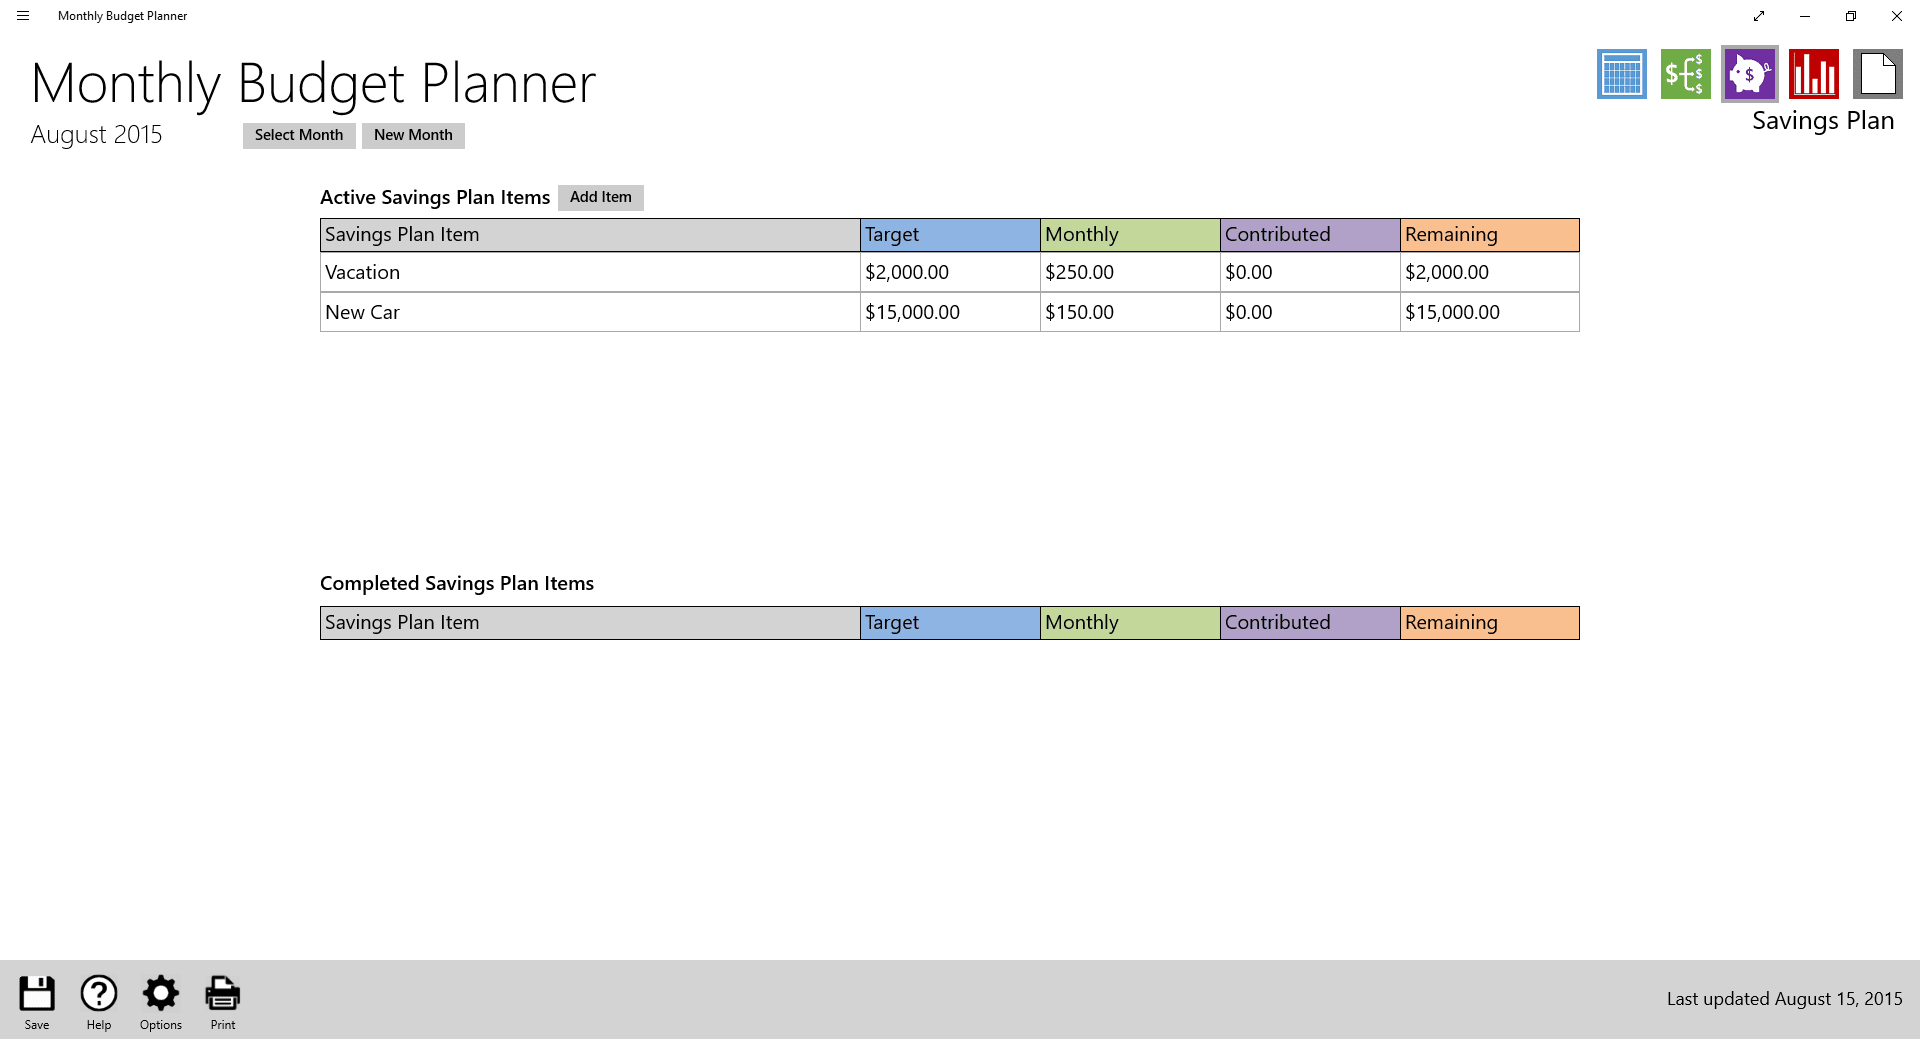 Monthly Budget Planner - Download